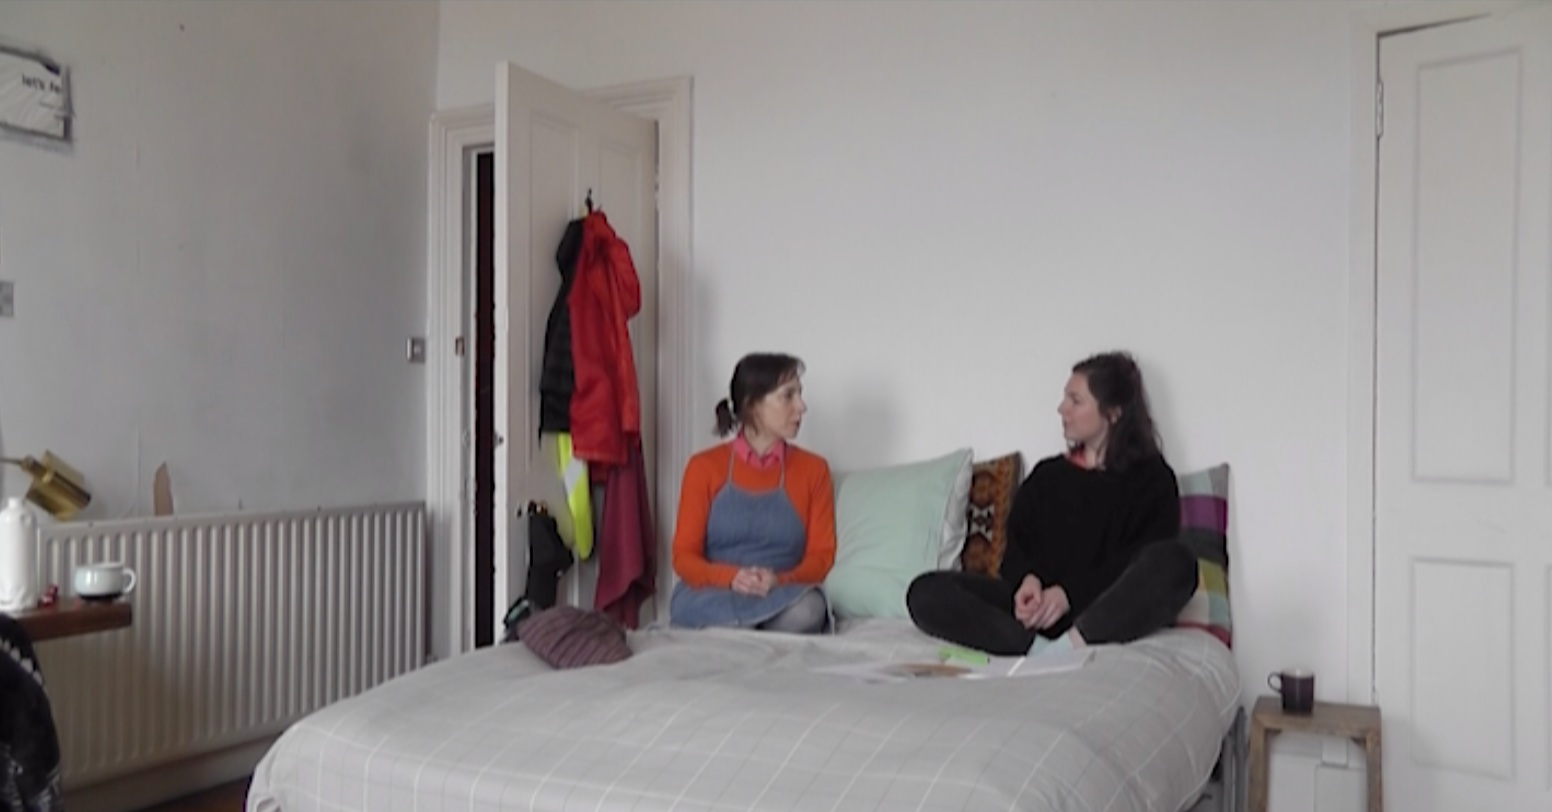 Jude Browning talks to Anne-Marie Copestake in bed